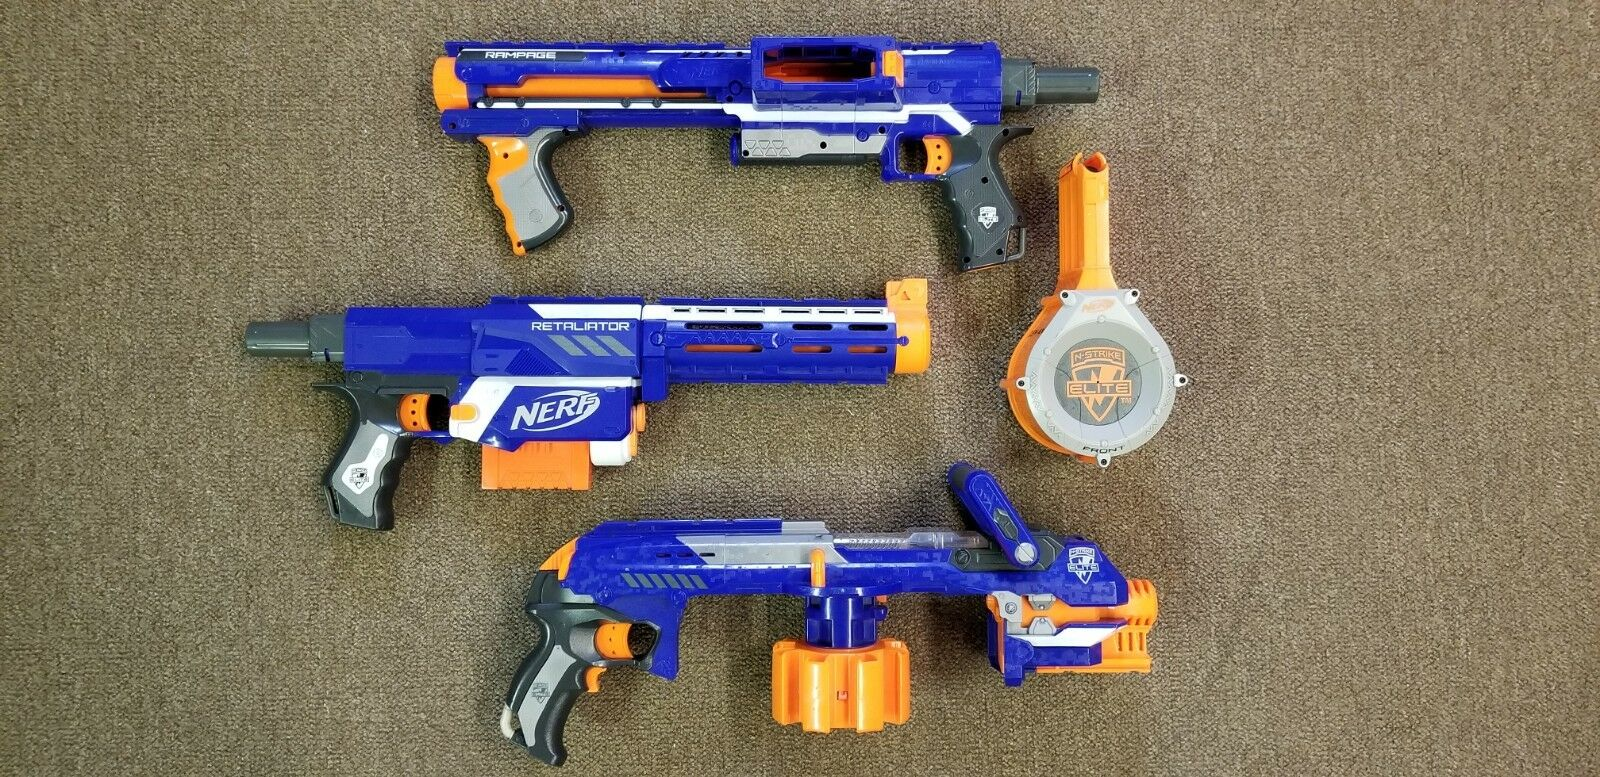 3 Nerf Guns - Retaliator, Rampage and Hailfire Blasters - Work Great